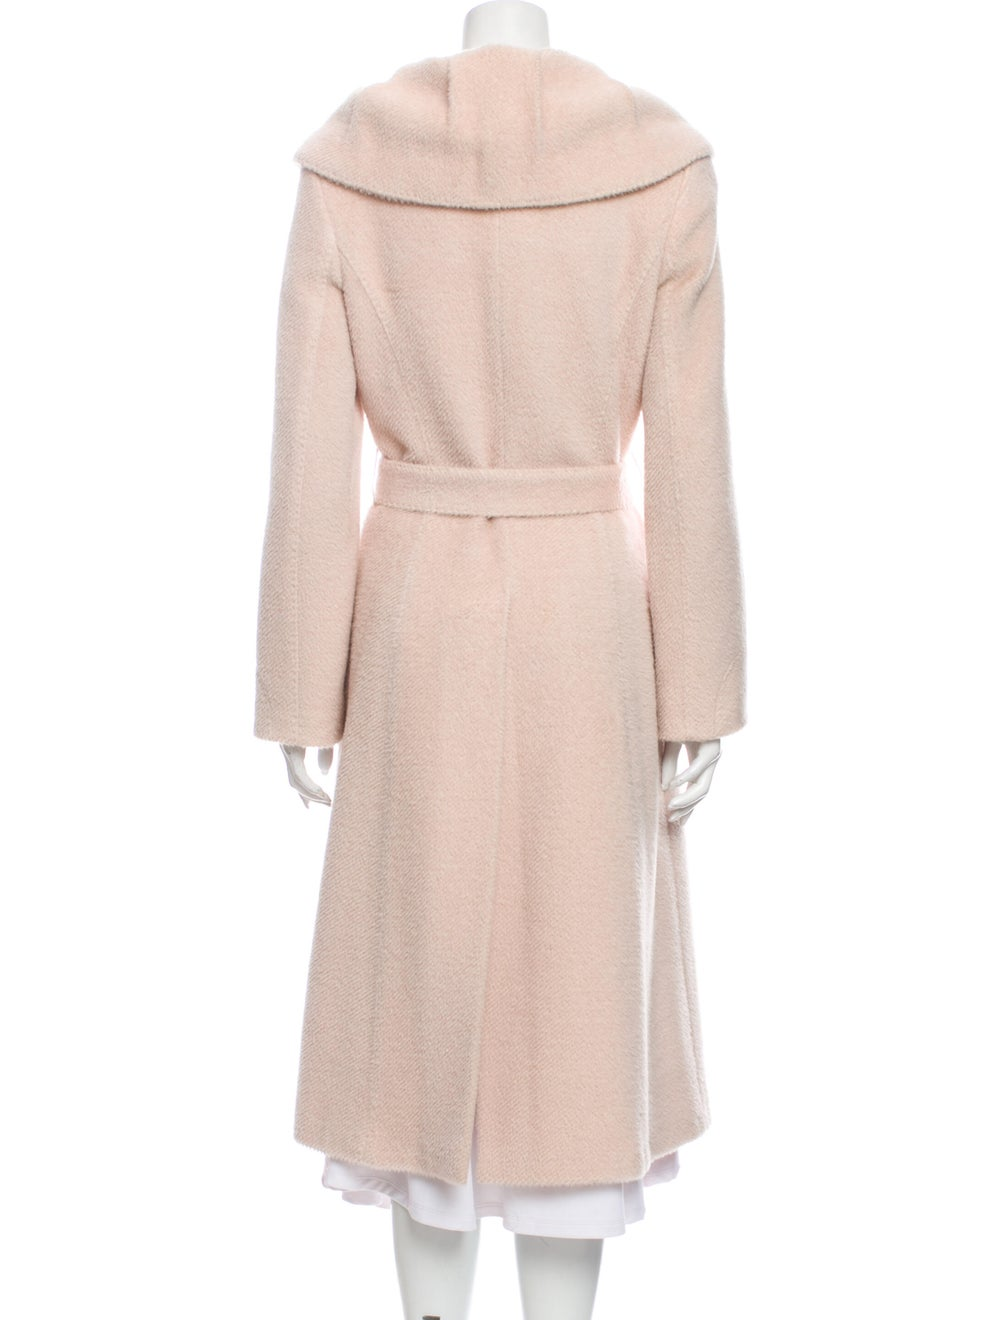 Searle Trench Coat Pink - image 3